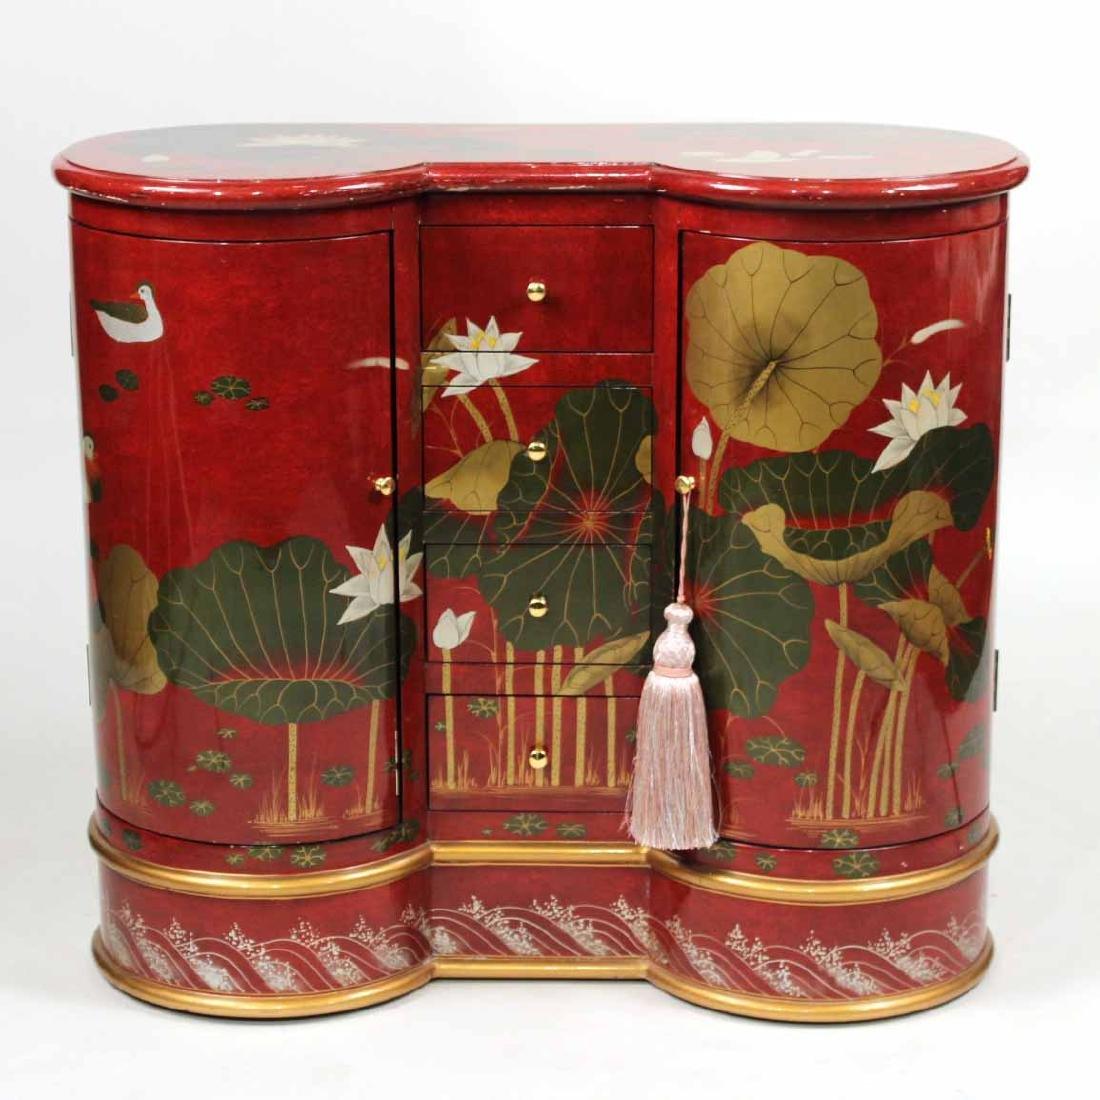 Japanese Red-Lacquer Chest